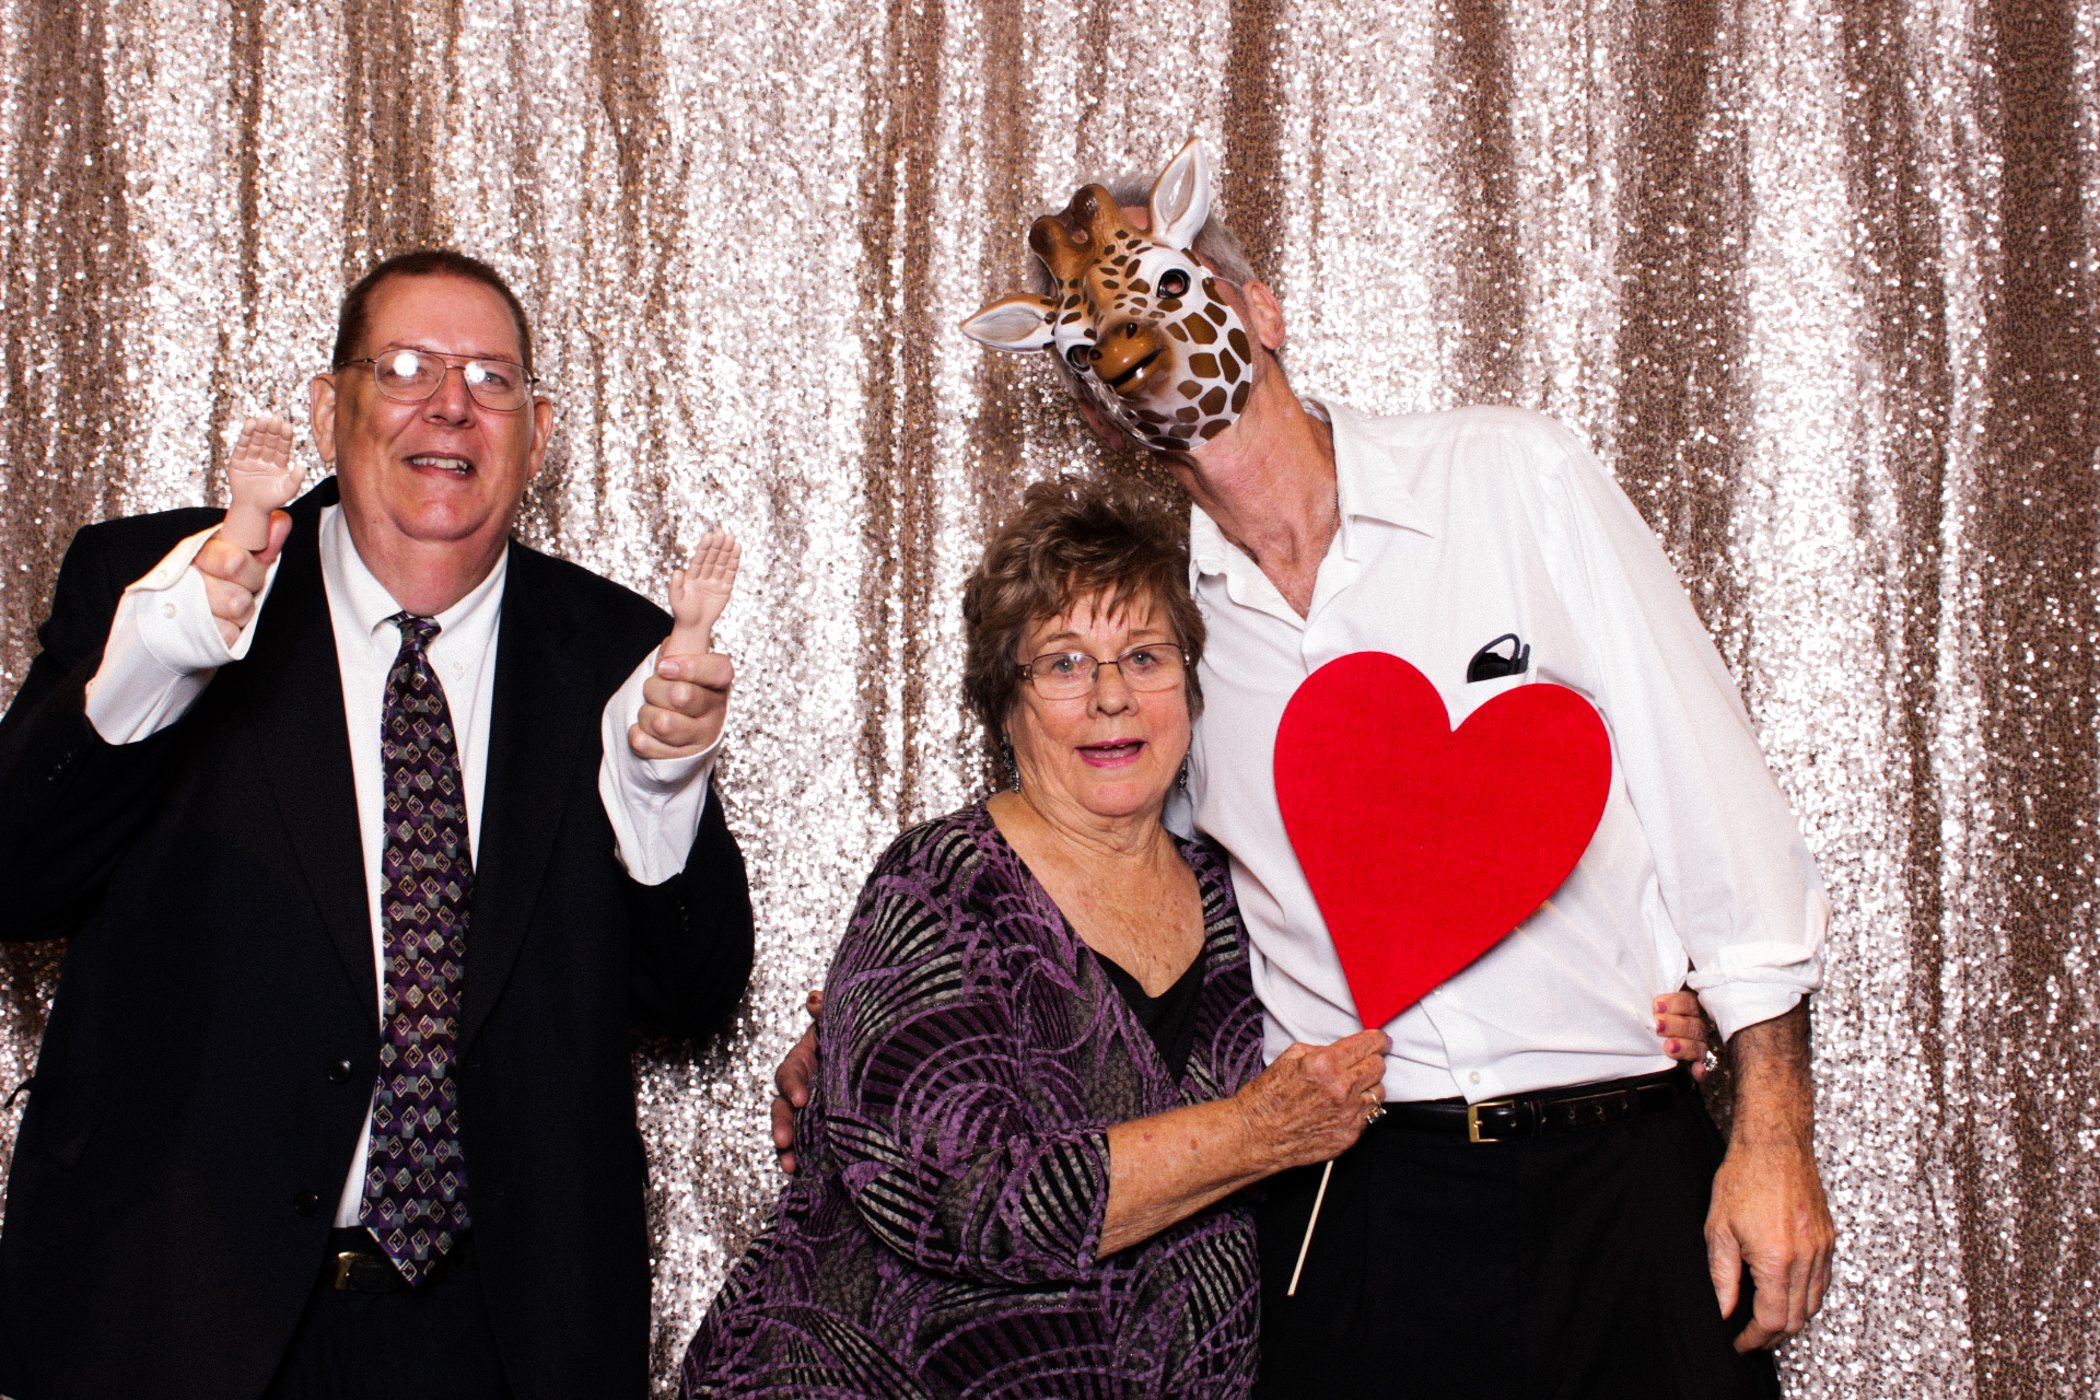 The_Reverie_Booth-Boca_Raton_Photobooth-Wedding_Photobooth_Florida-Florida_Photobooth_Rental-Wedding_Photobooth-045.jpg